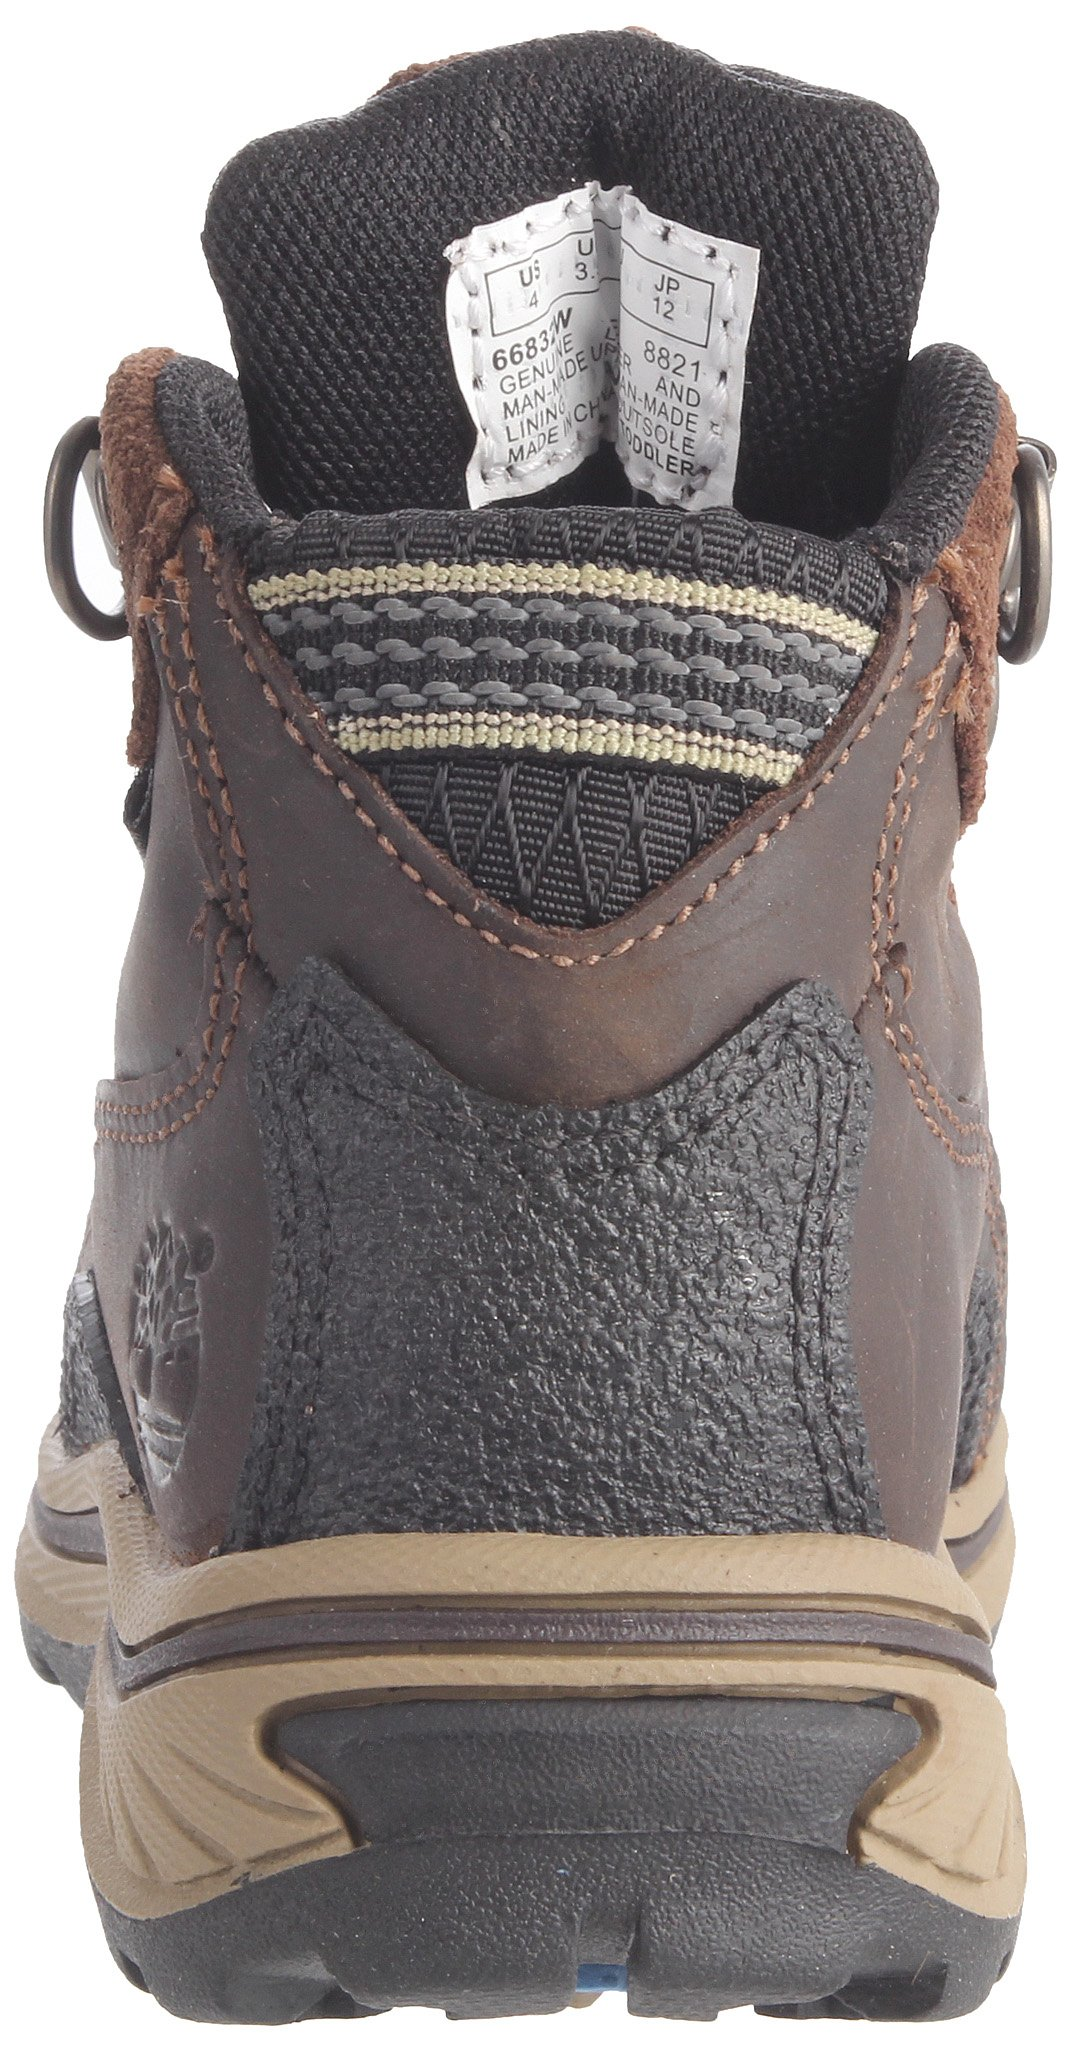 Timberland Pawtuckaway, Unisex-Child Hiking Shoes 2